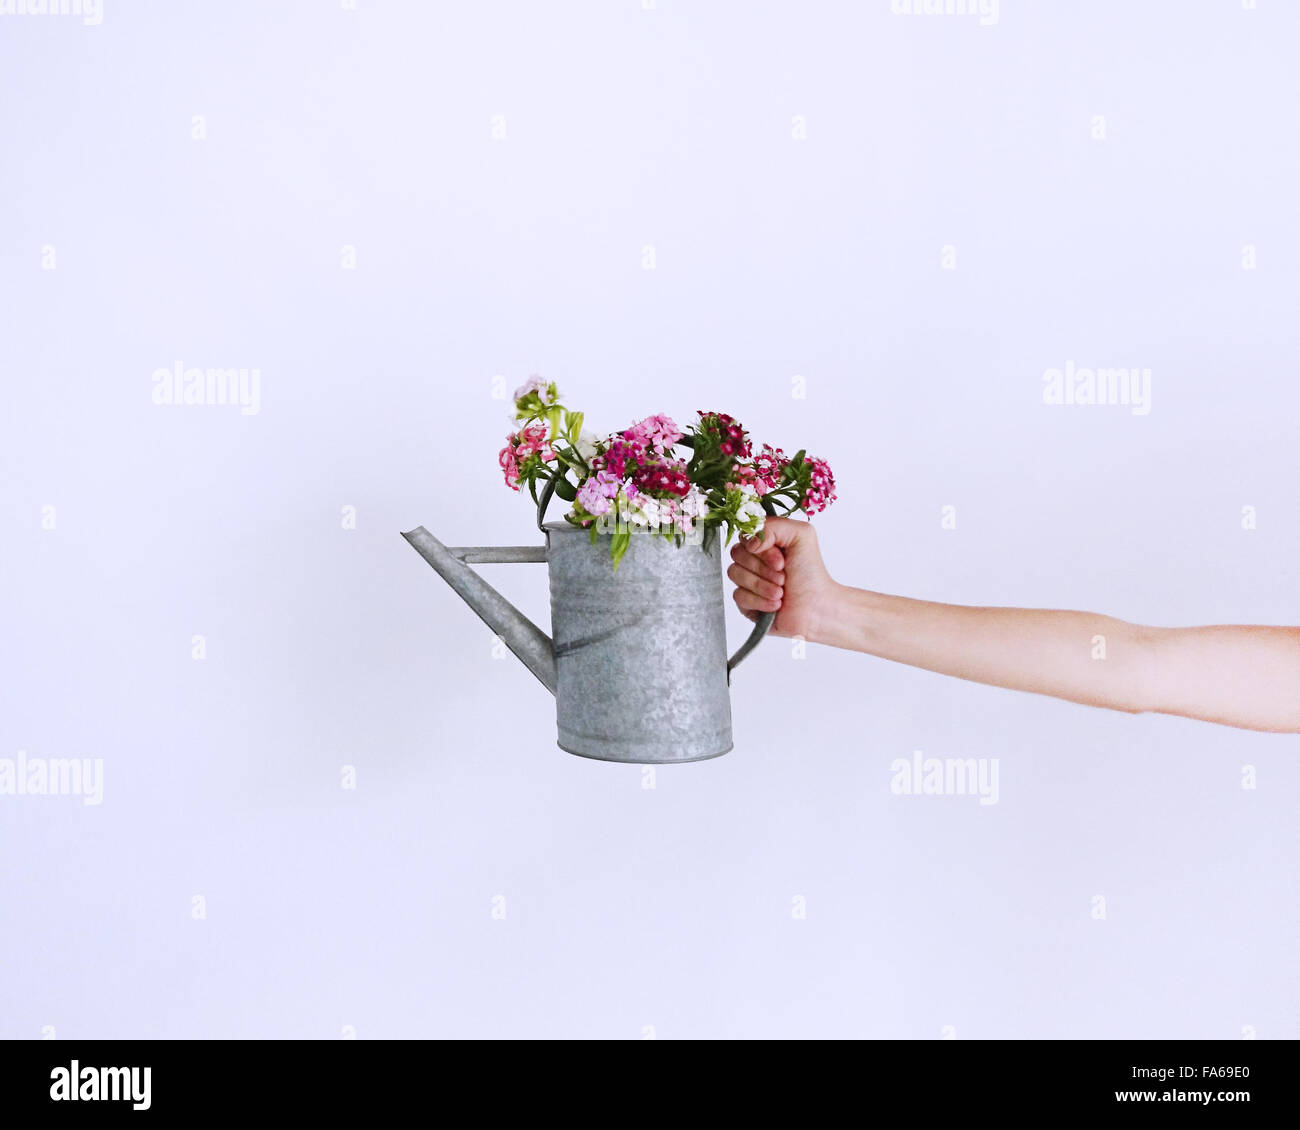 Woman's hand holding Watering can with flowers Stock Photo